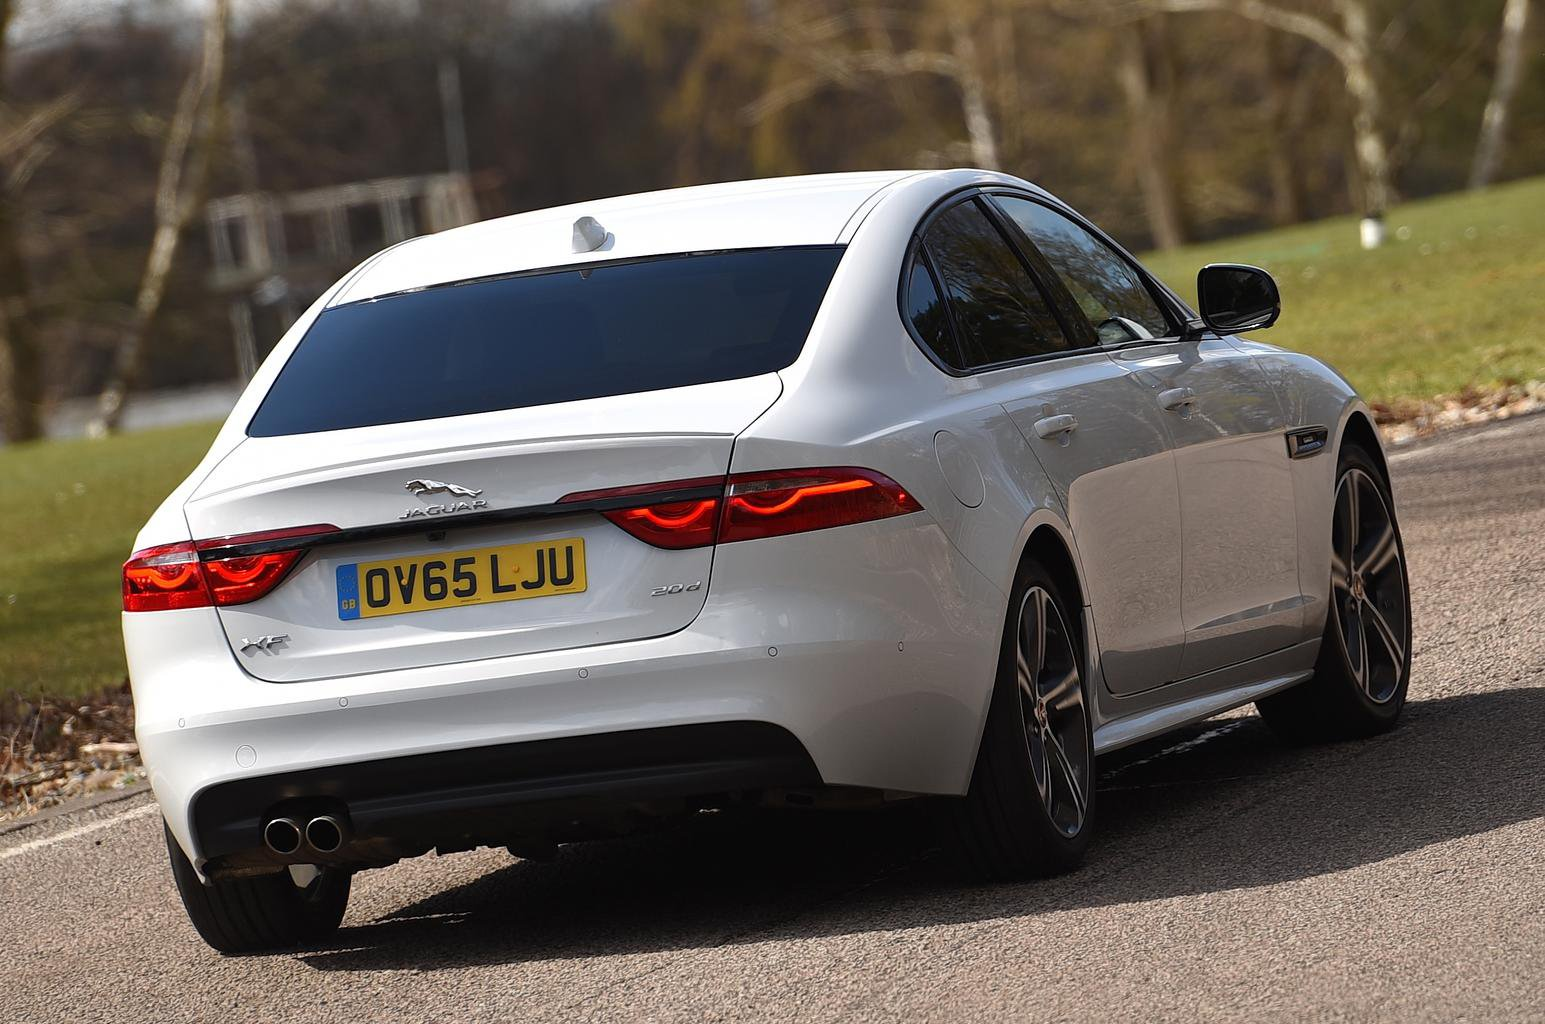 New Mercedes E-Class vs BMW 5 Series vs Jaguar XF